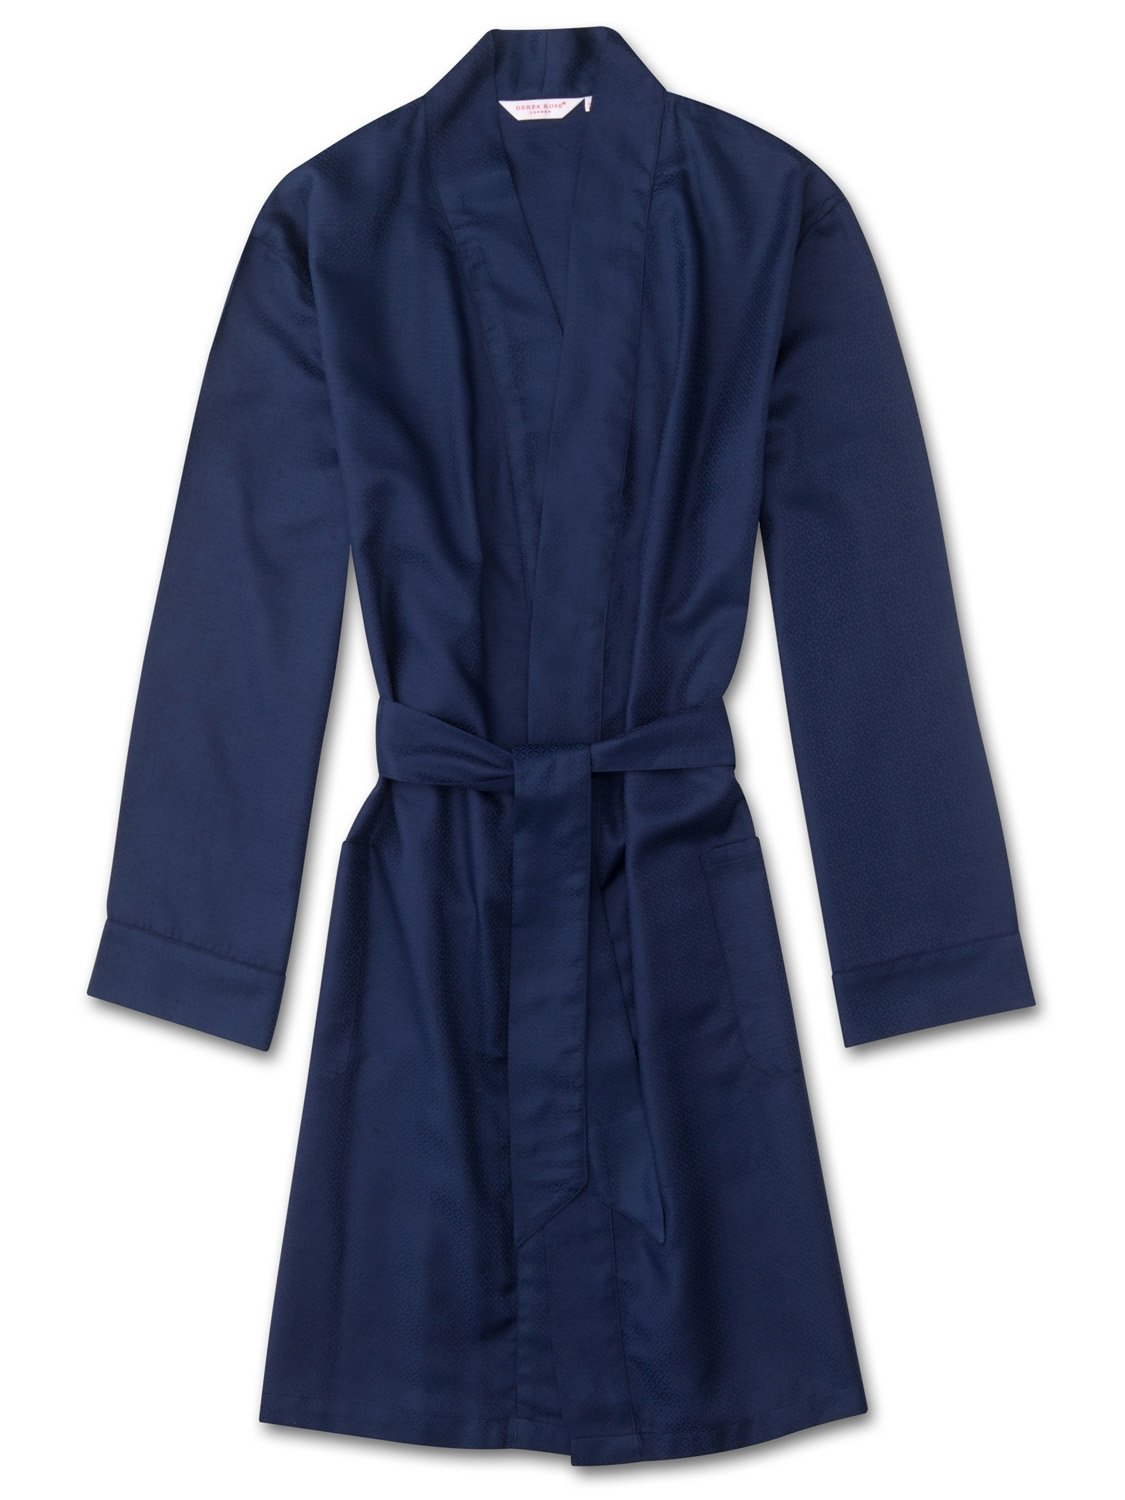 Men's Lounge Gown Lombard 6 Cotton Jacquard Navy